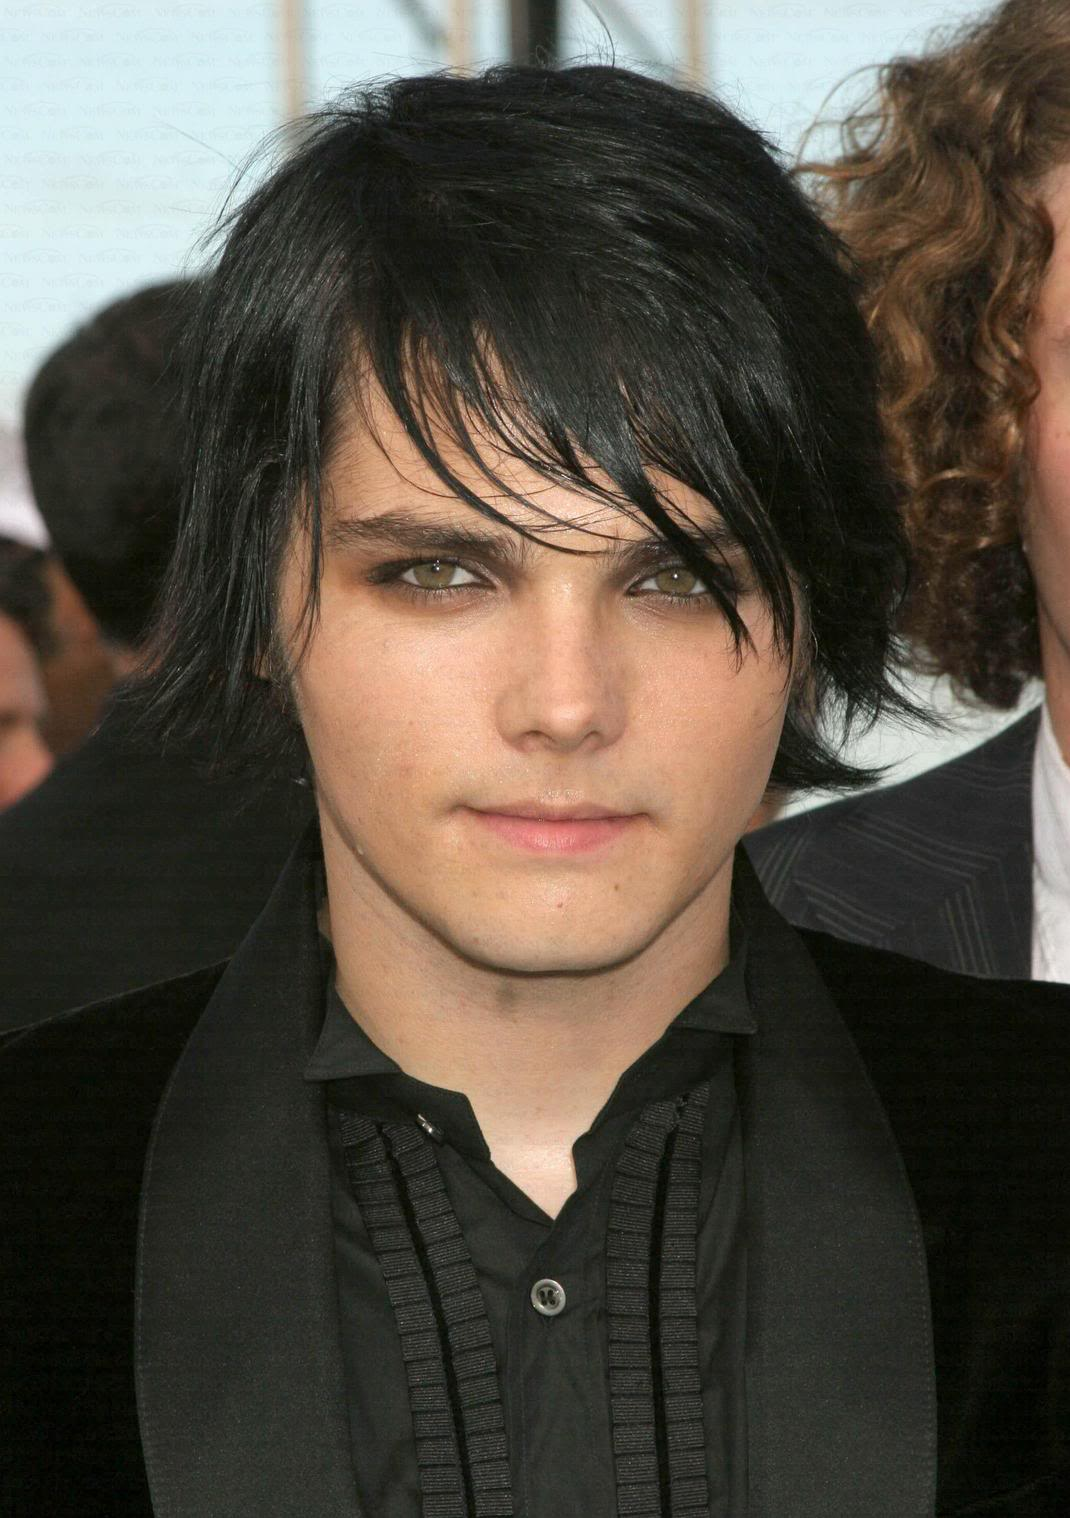 Gerard Way Net Worth